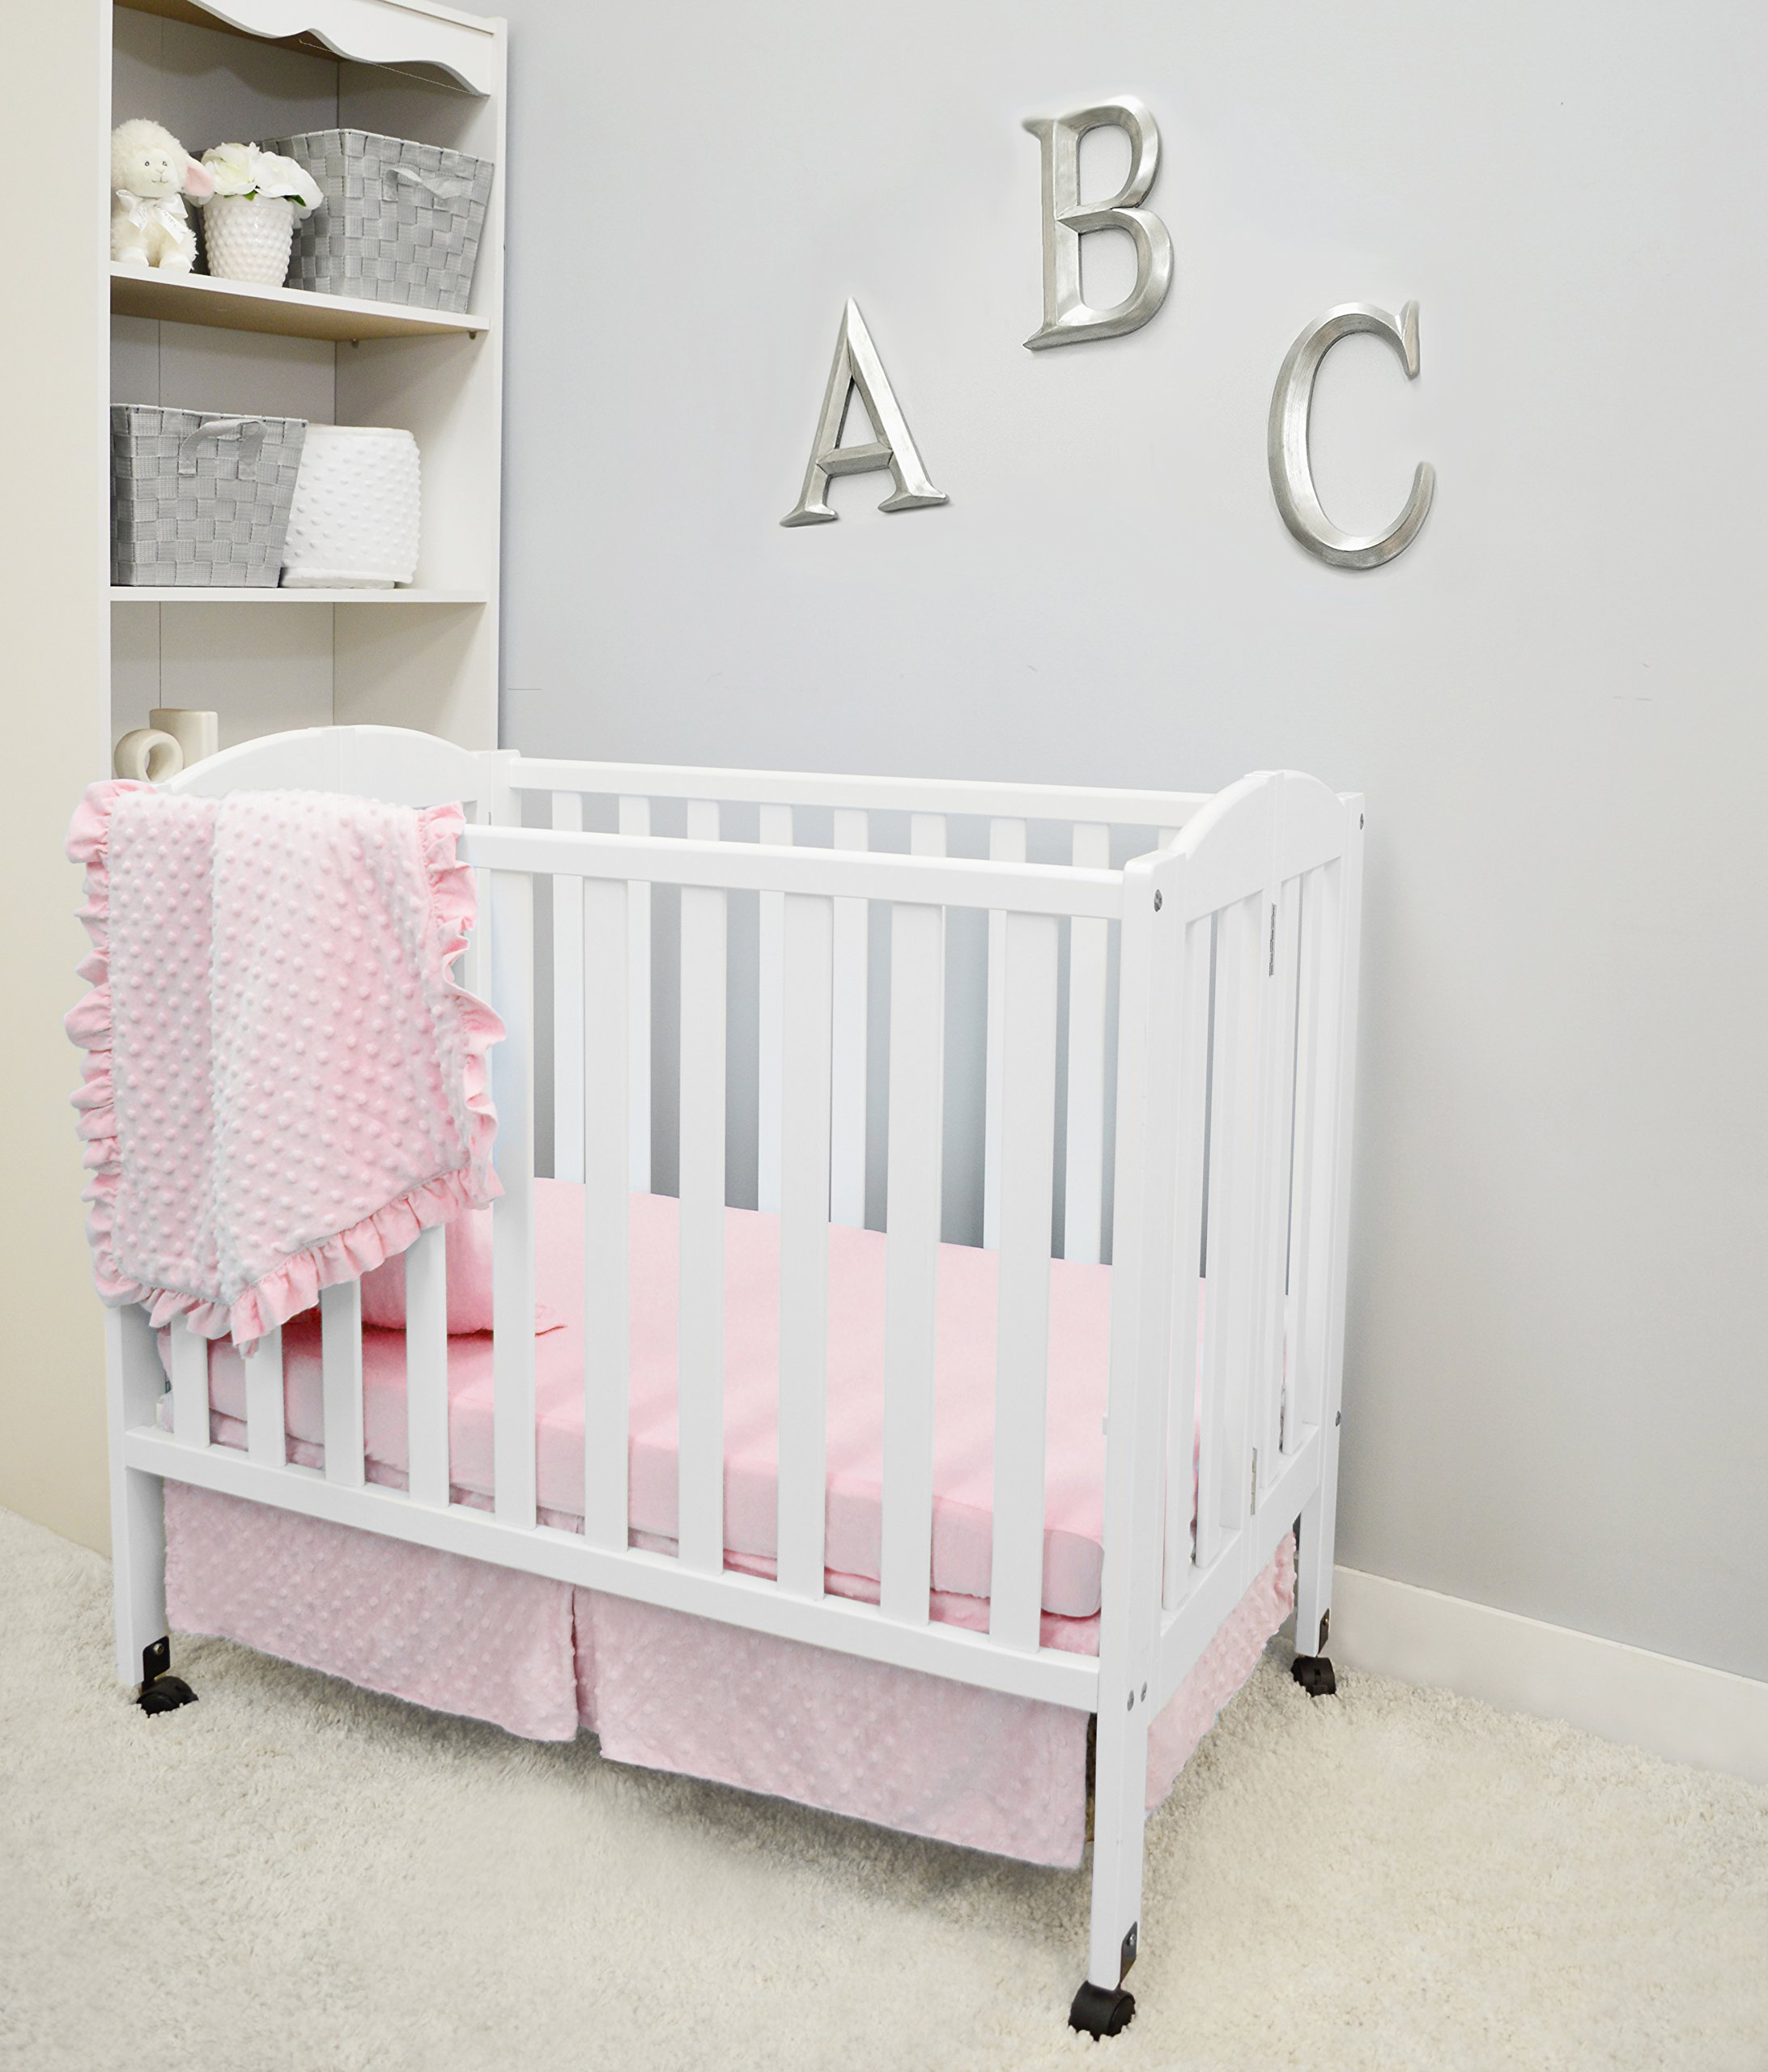 of beautiful athena white baby inspirational babyletto buy nursery toddler alice in mini furniture portable rail origami with crib